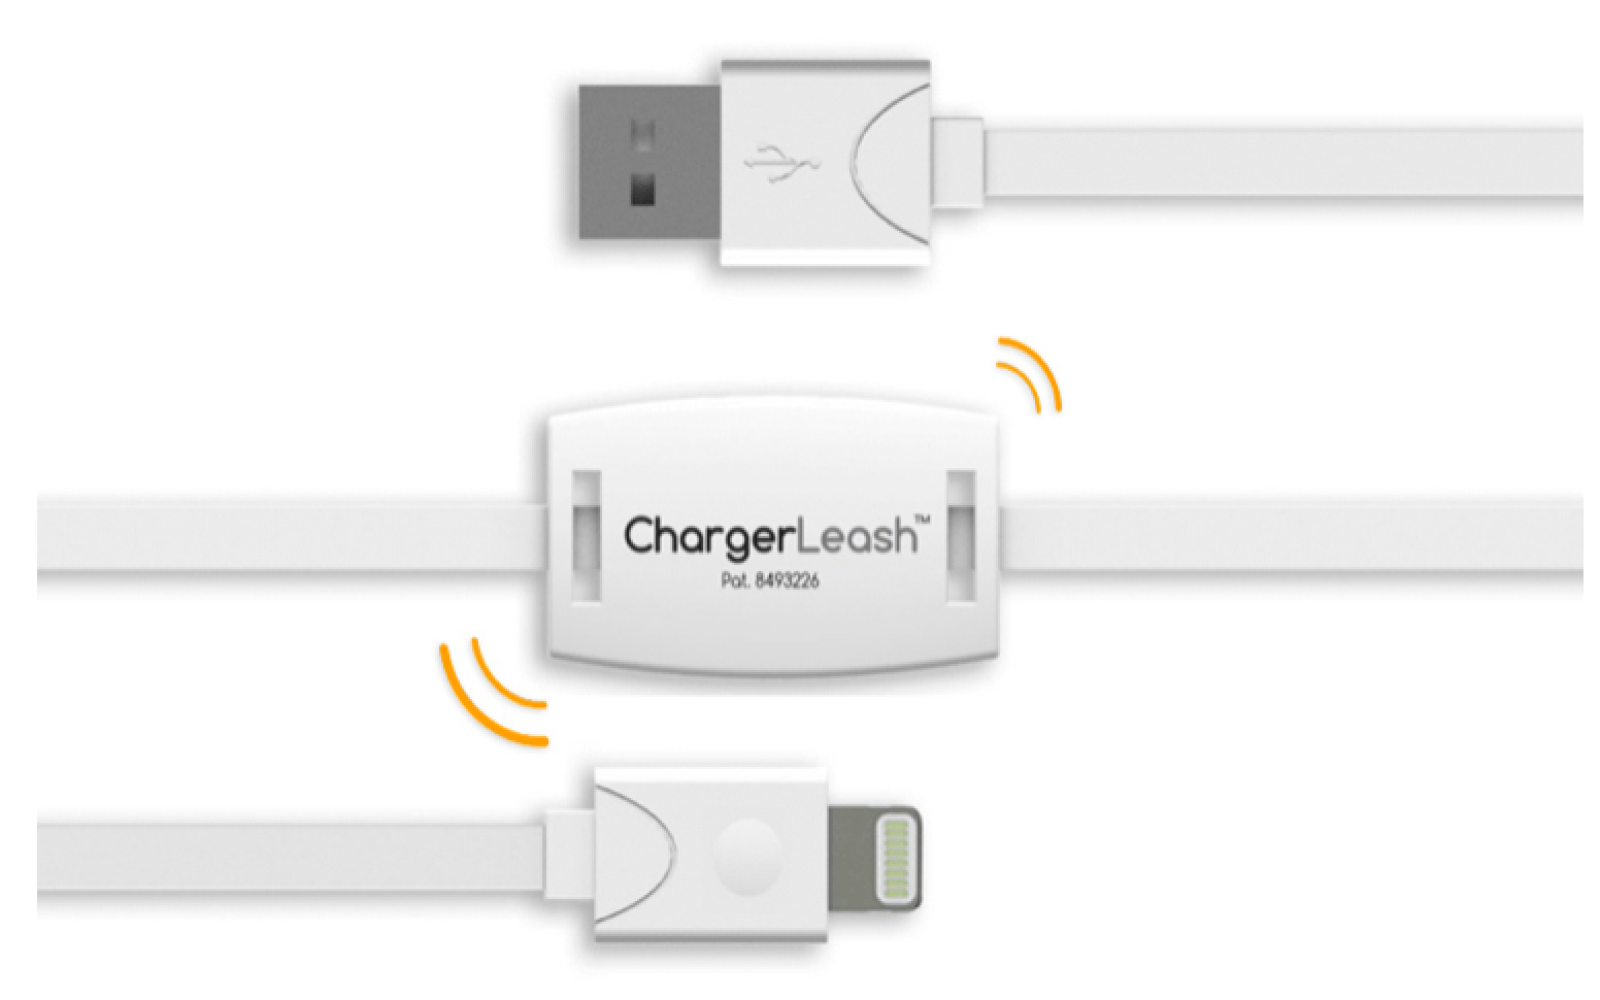 ChargerLeash Lightning cable makes sure you never forget your iPhone charger again